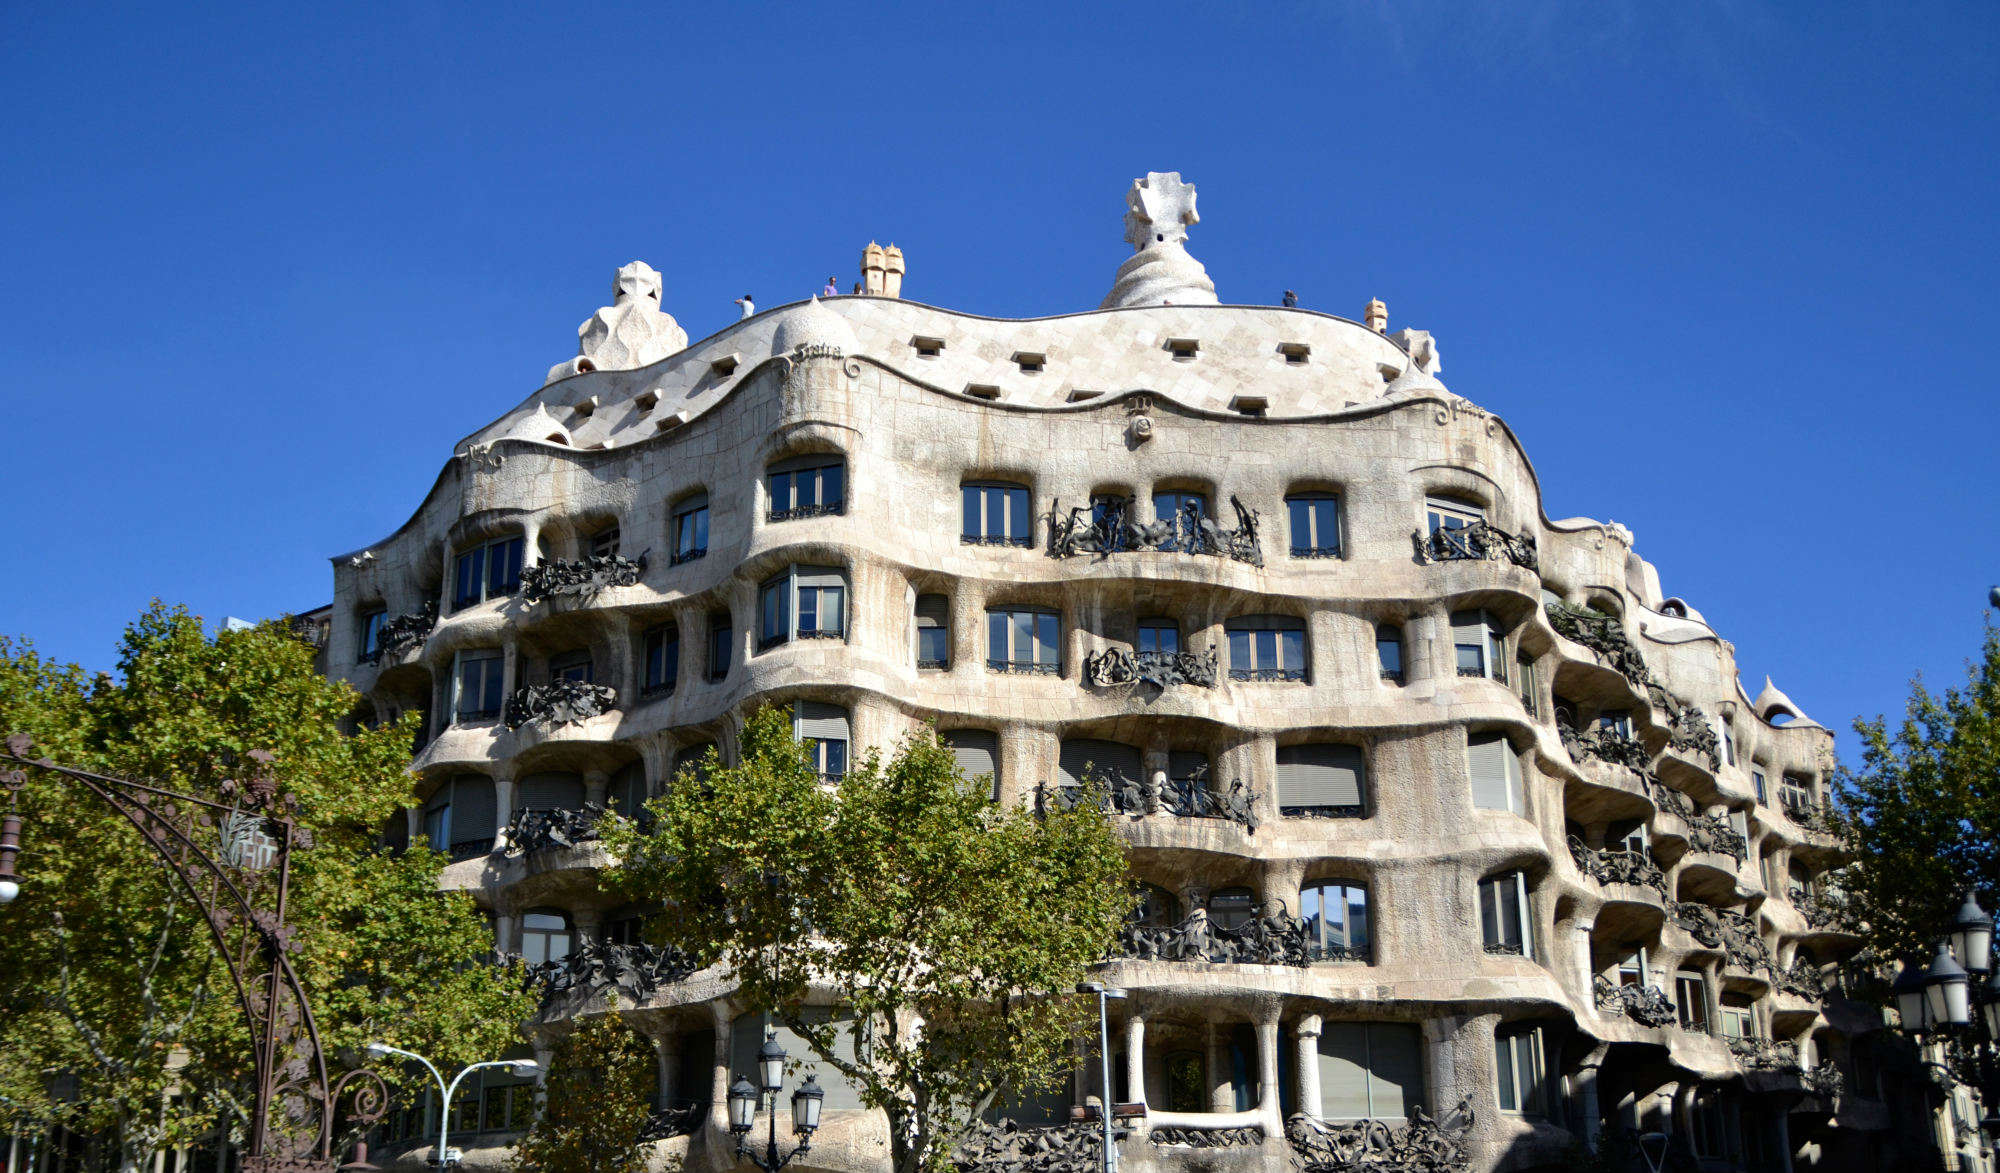 Sight: Casa Milà